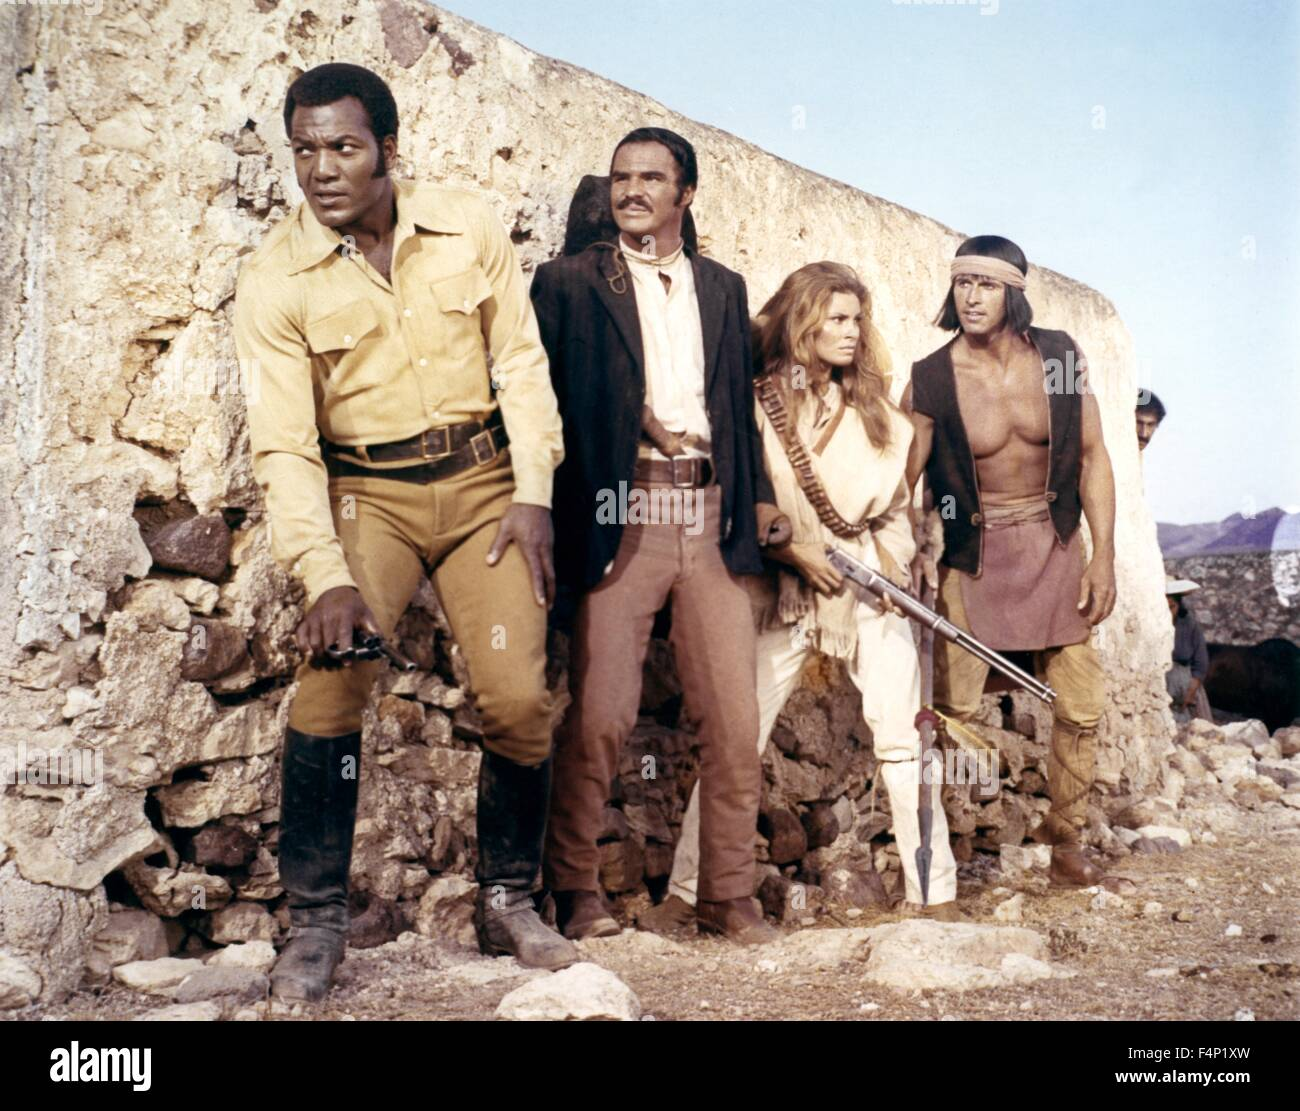 Raquel Welch, Jim Brown, Burt Reynolds / 100 Rifles 1969 directed by Tom Gries - Stock Image